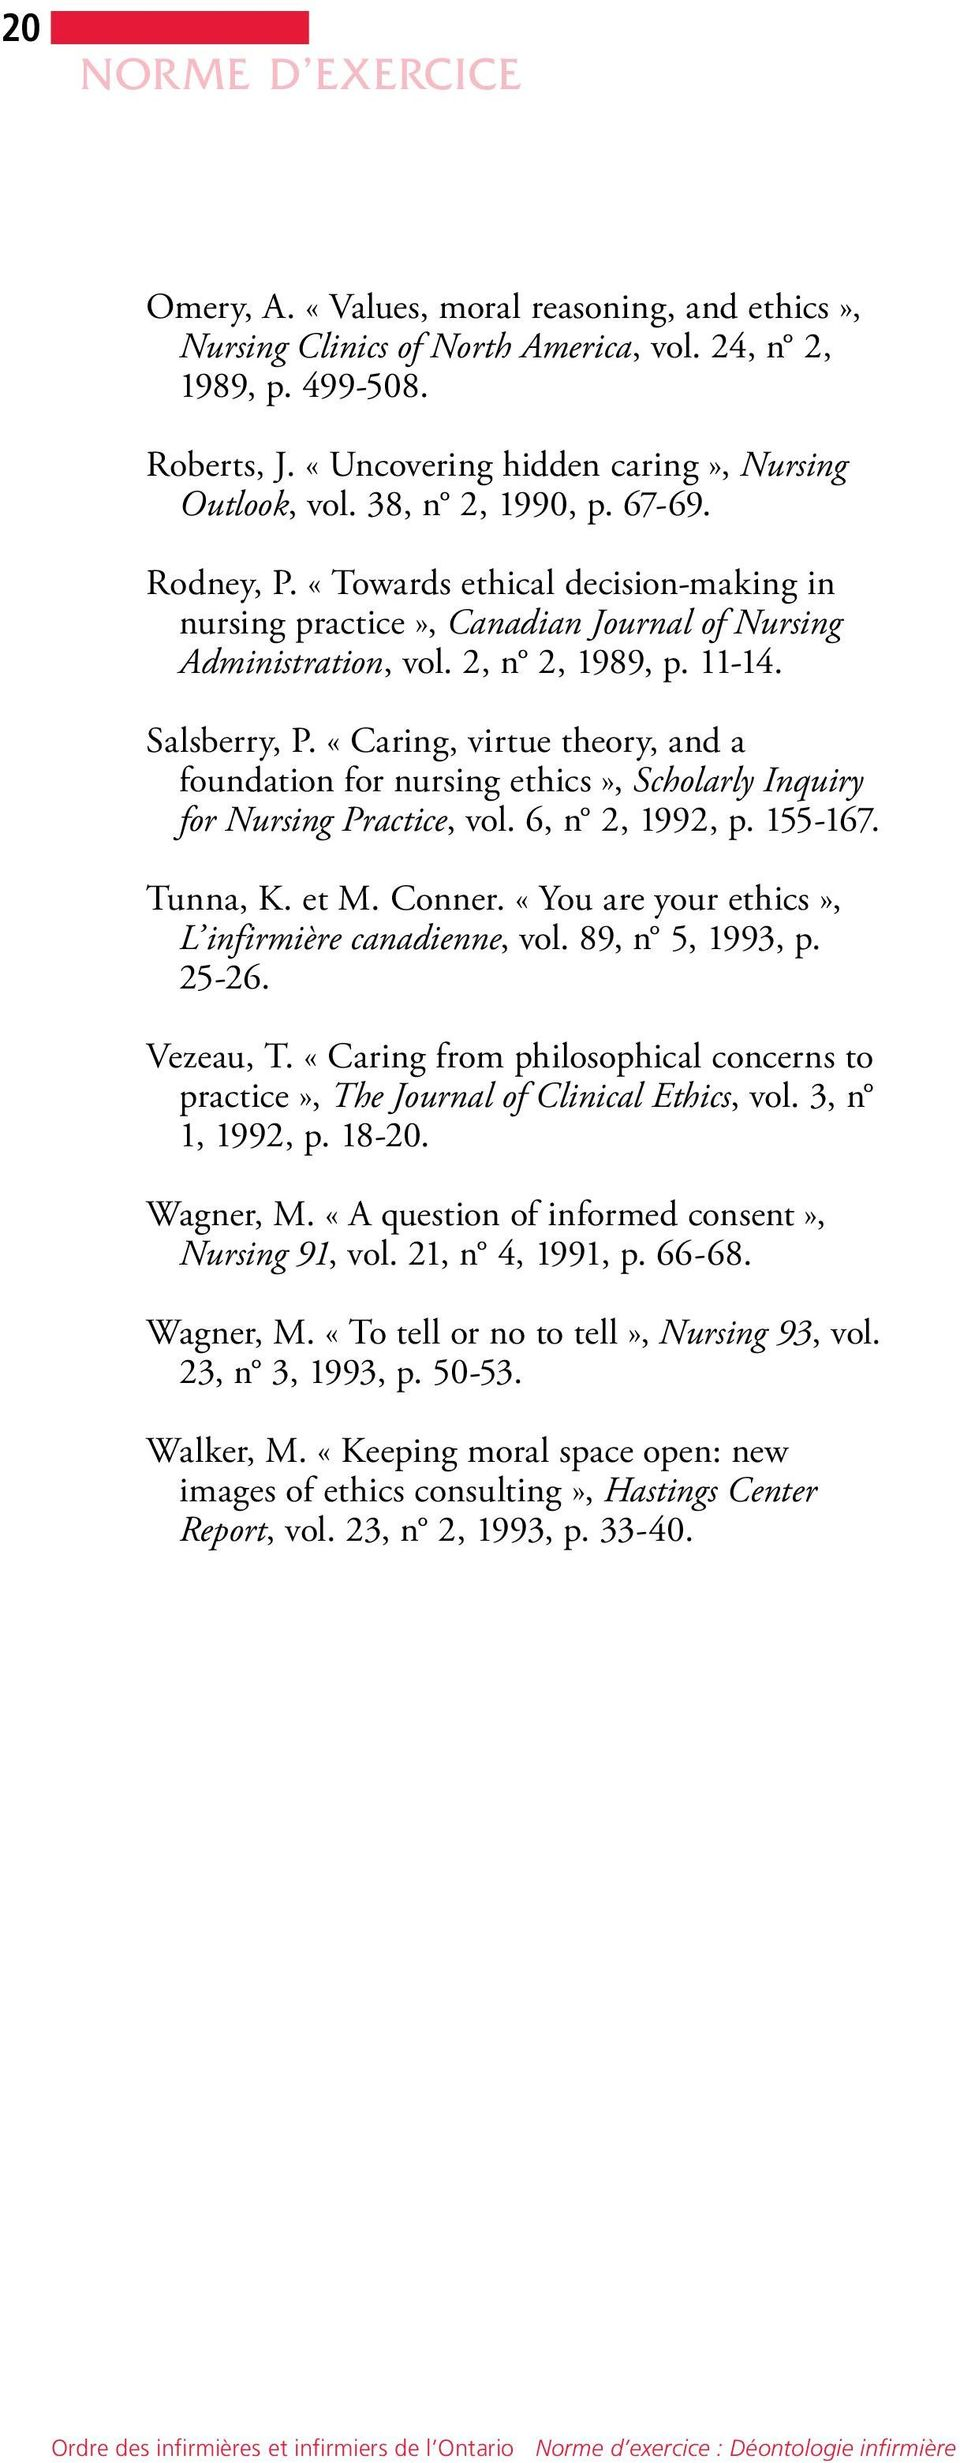 «Caring, virtue theory, and a foundation for nursing ethics», Scholarly Inquiry for Nursing Practice, vol. 6, n 2, 1992, p. 155-167. Tunna, K. et M. Conner.